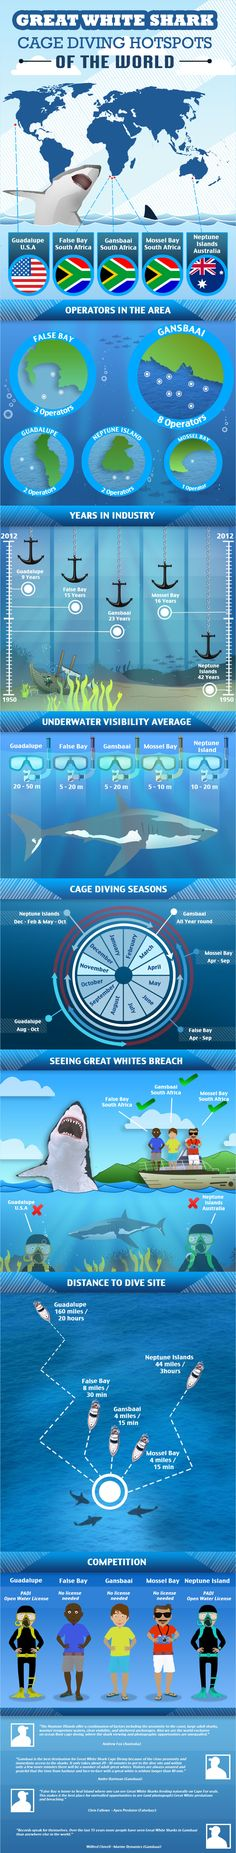 Great White Shark Cage Diving Hotspots of the World Infographic http://www.deepbluediving.org/suunto-zoop-novo-vs-suunto-zoop/